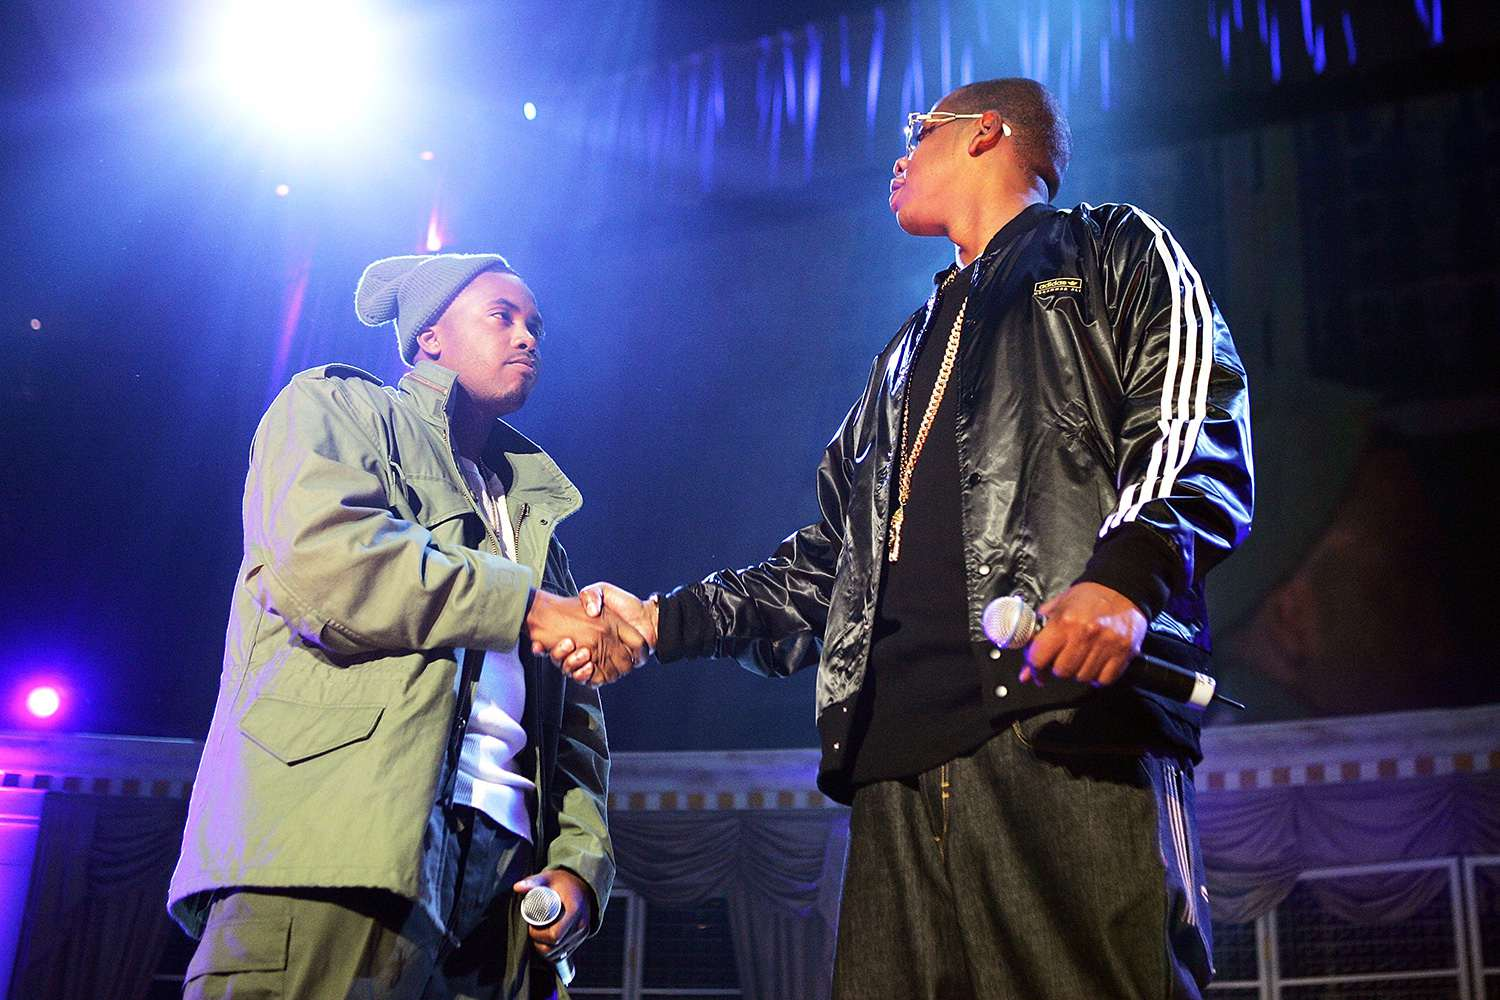 Nas and Jay-Z shaking hands